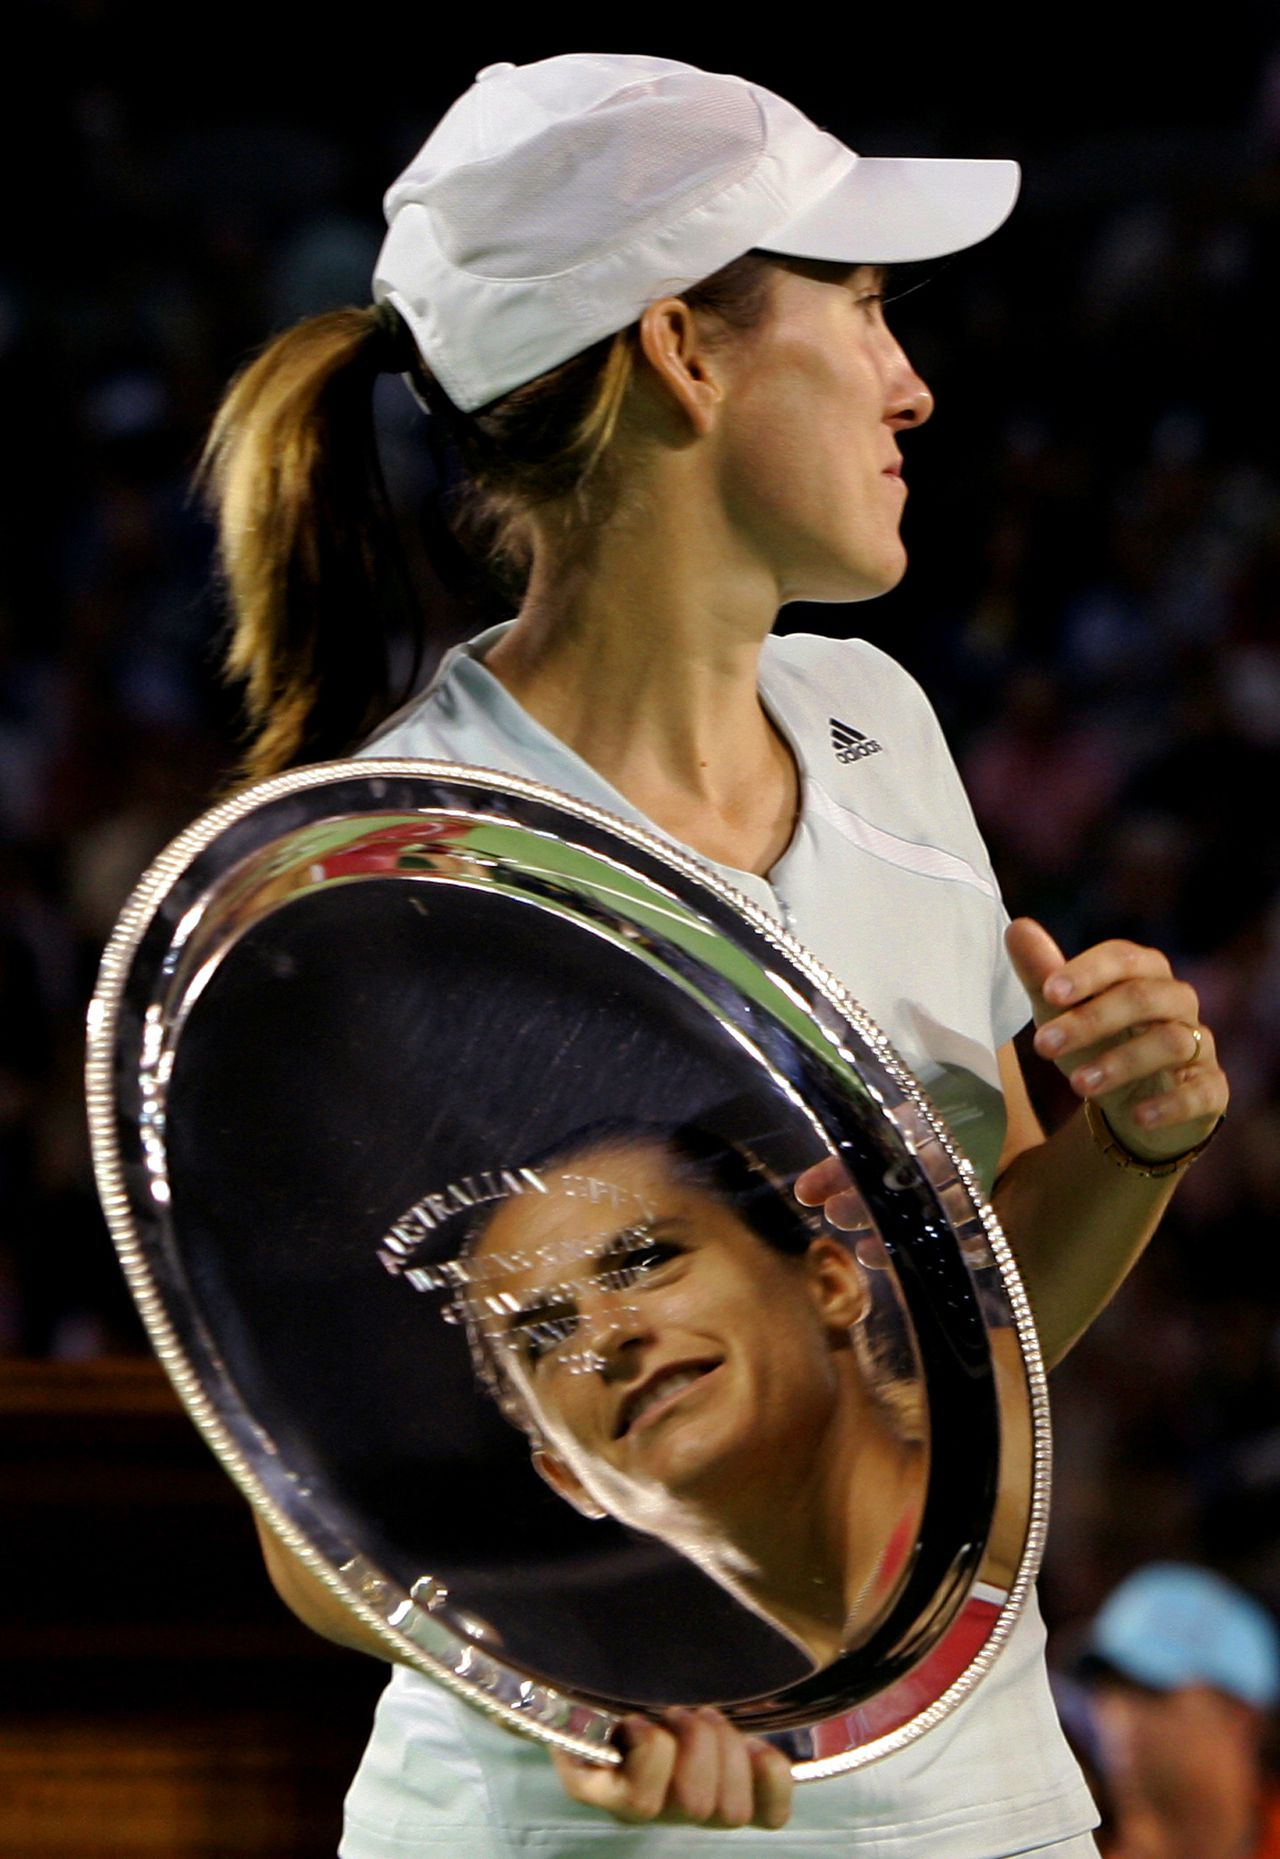 PICTURES OF THE YEAR 2006 Amelie Mauresmo of France is reflected in the runner-up trophy held by Justine Henin-Hardenne of Belgium after the women's singles final at the Australian Open tennis tournament in Melbourne January 28, 2006. REUTERS/David Gray